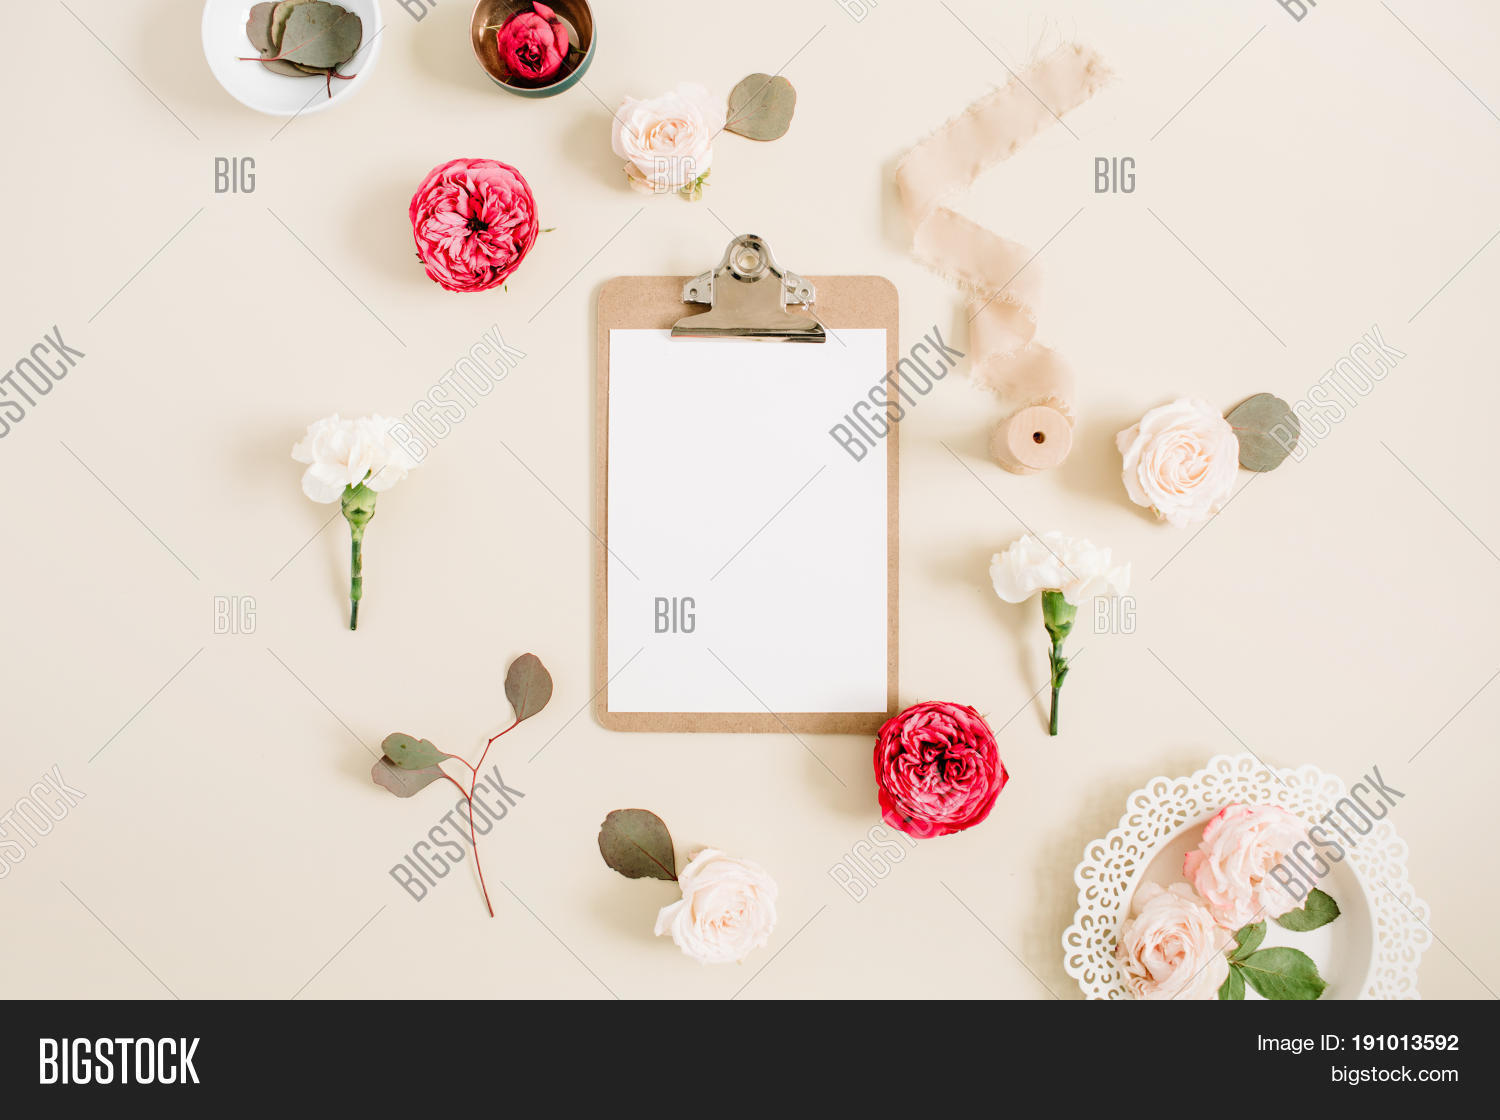 Flat Lay Floral Frame Image & Photo (Free Trial) | Bigstock